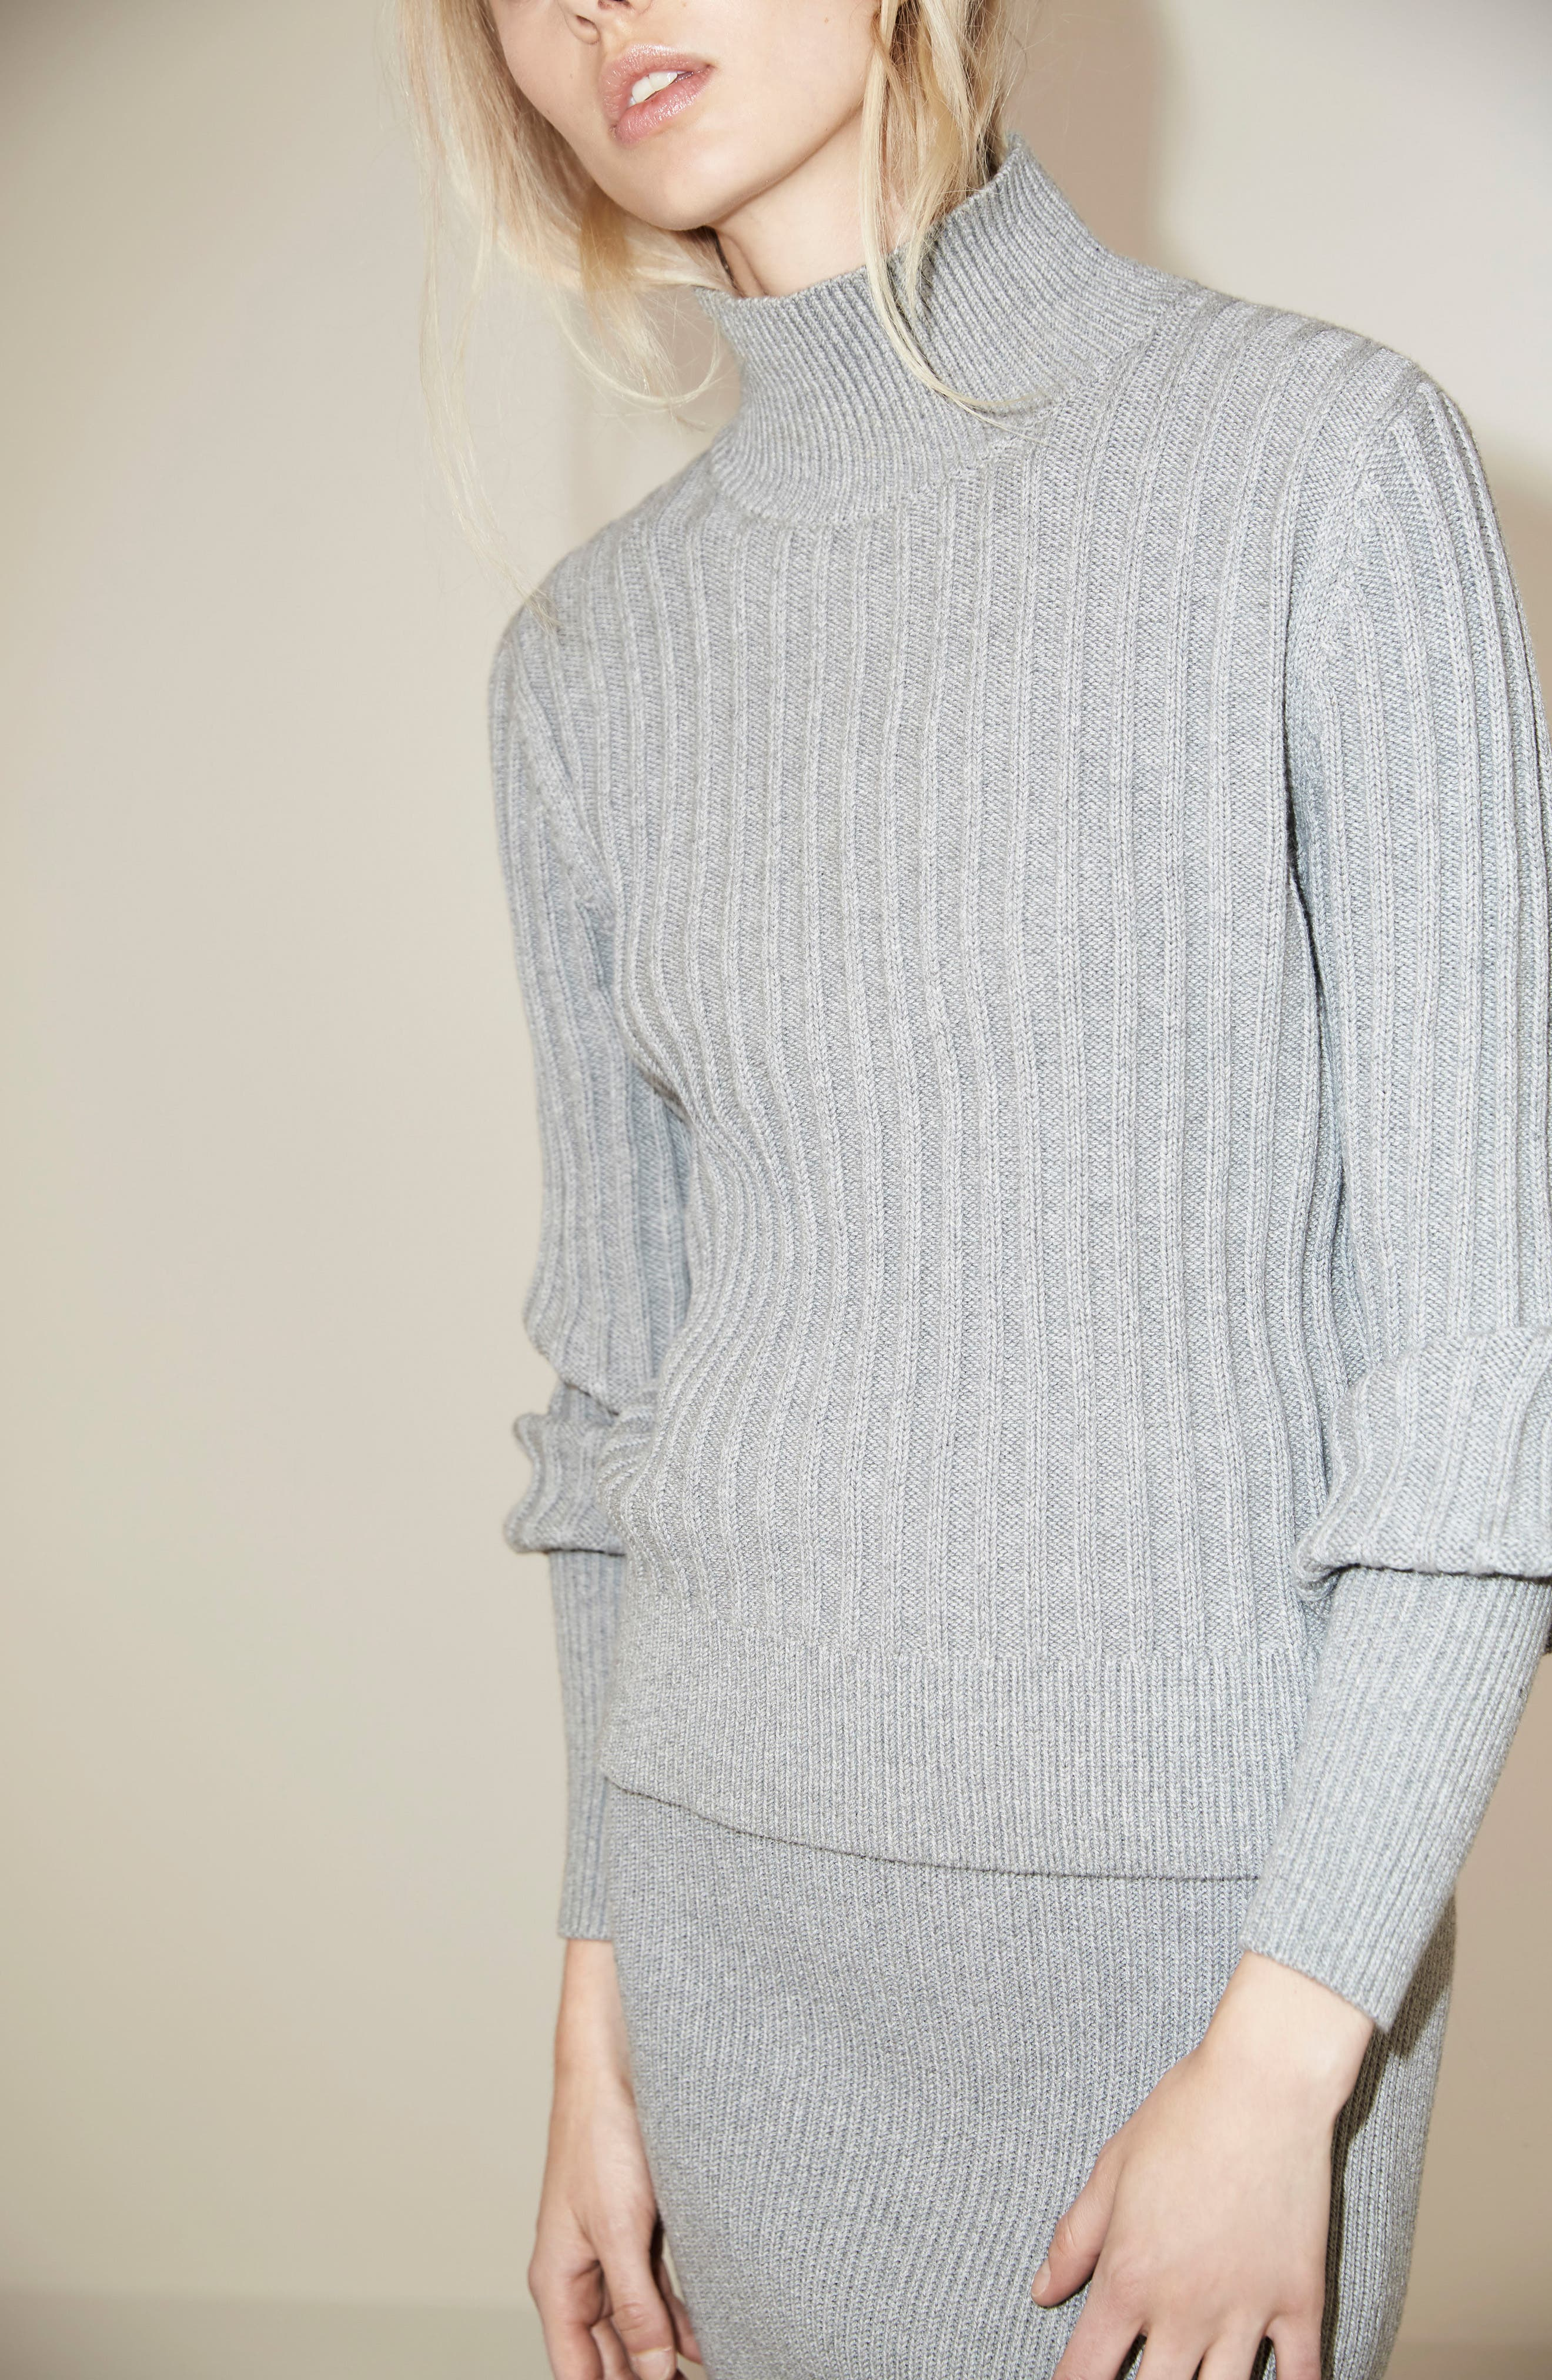 Galactic Puff Sleeve Sweater,                             Alternate thumbnail 7, color,                             051